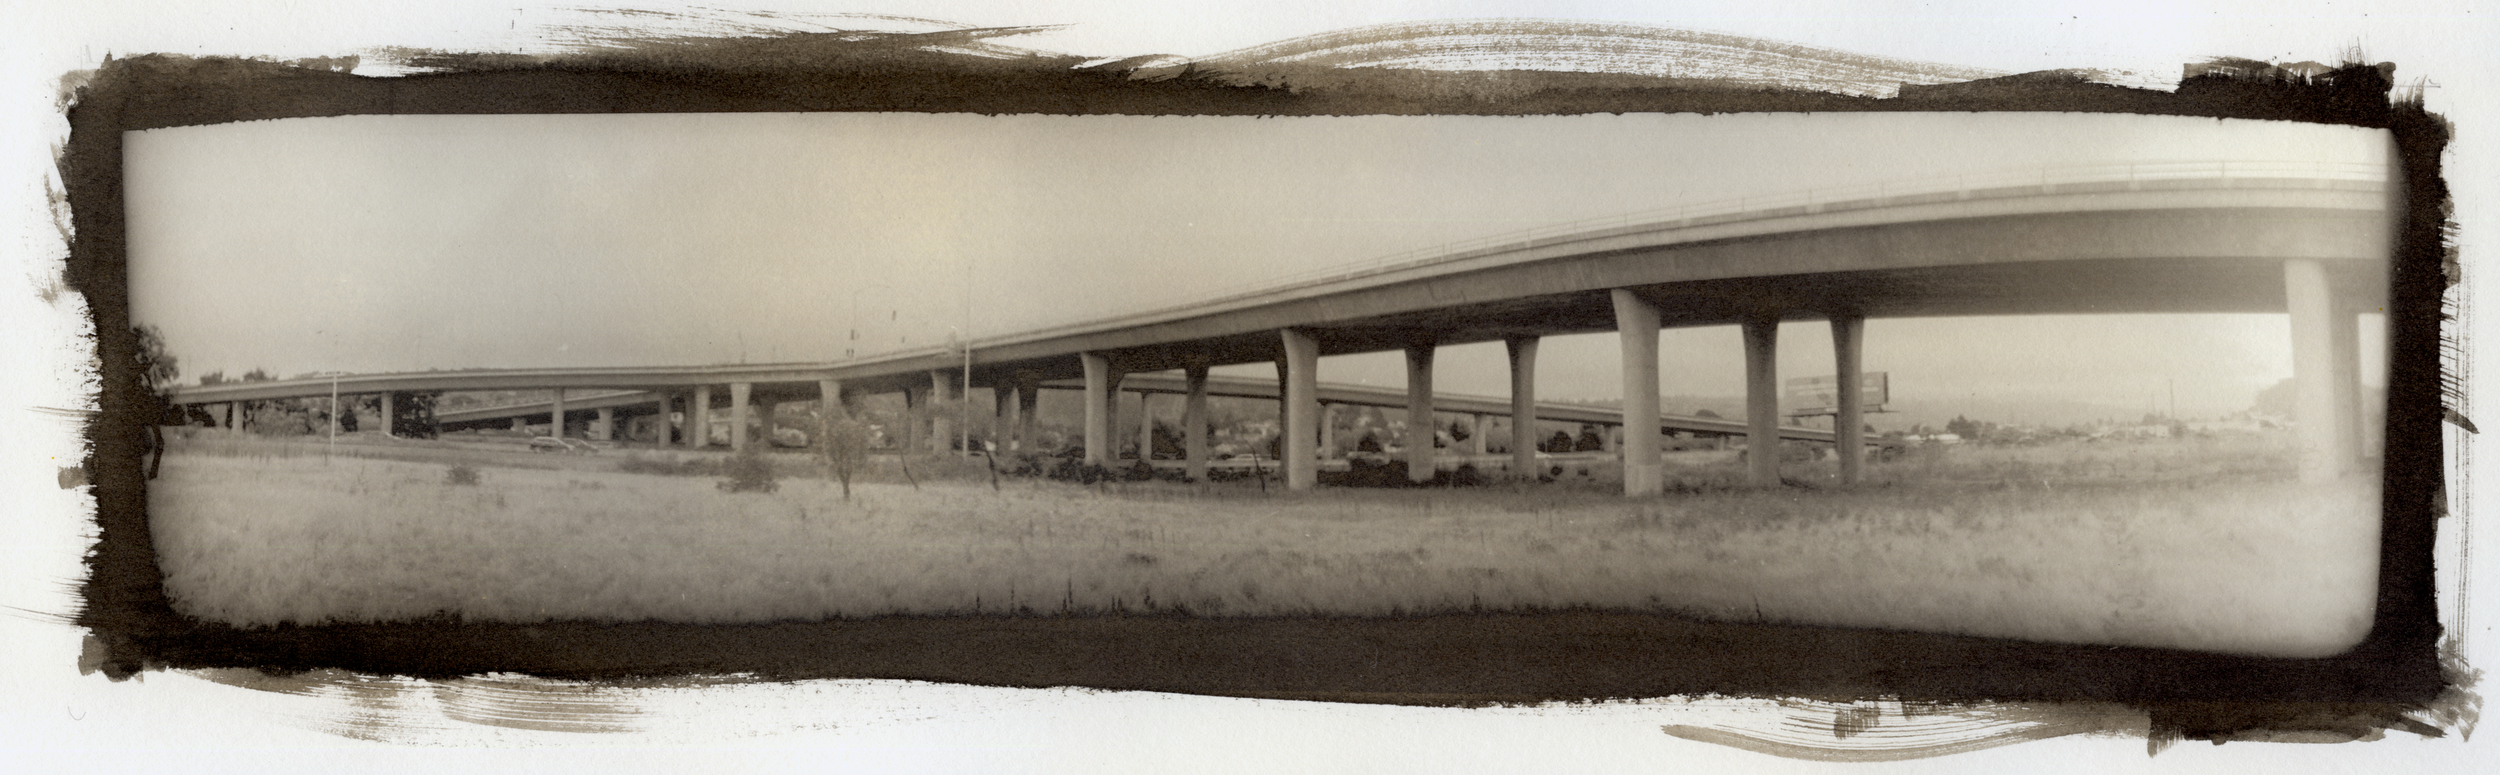 Bay View Off-ramp , Platinum print from Ostby's 3D-printed panoramic camera.